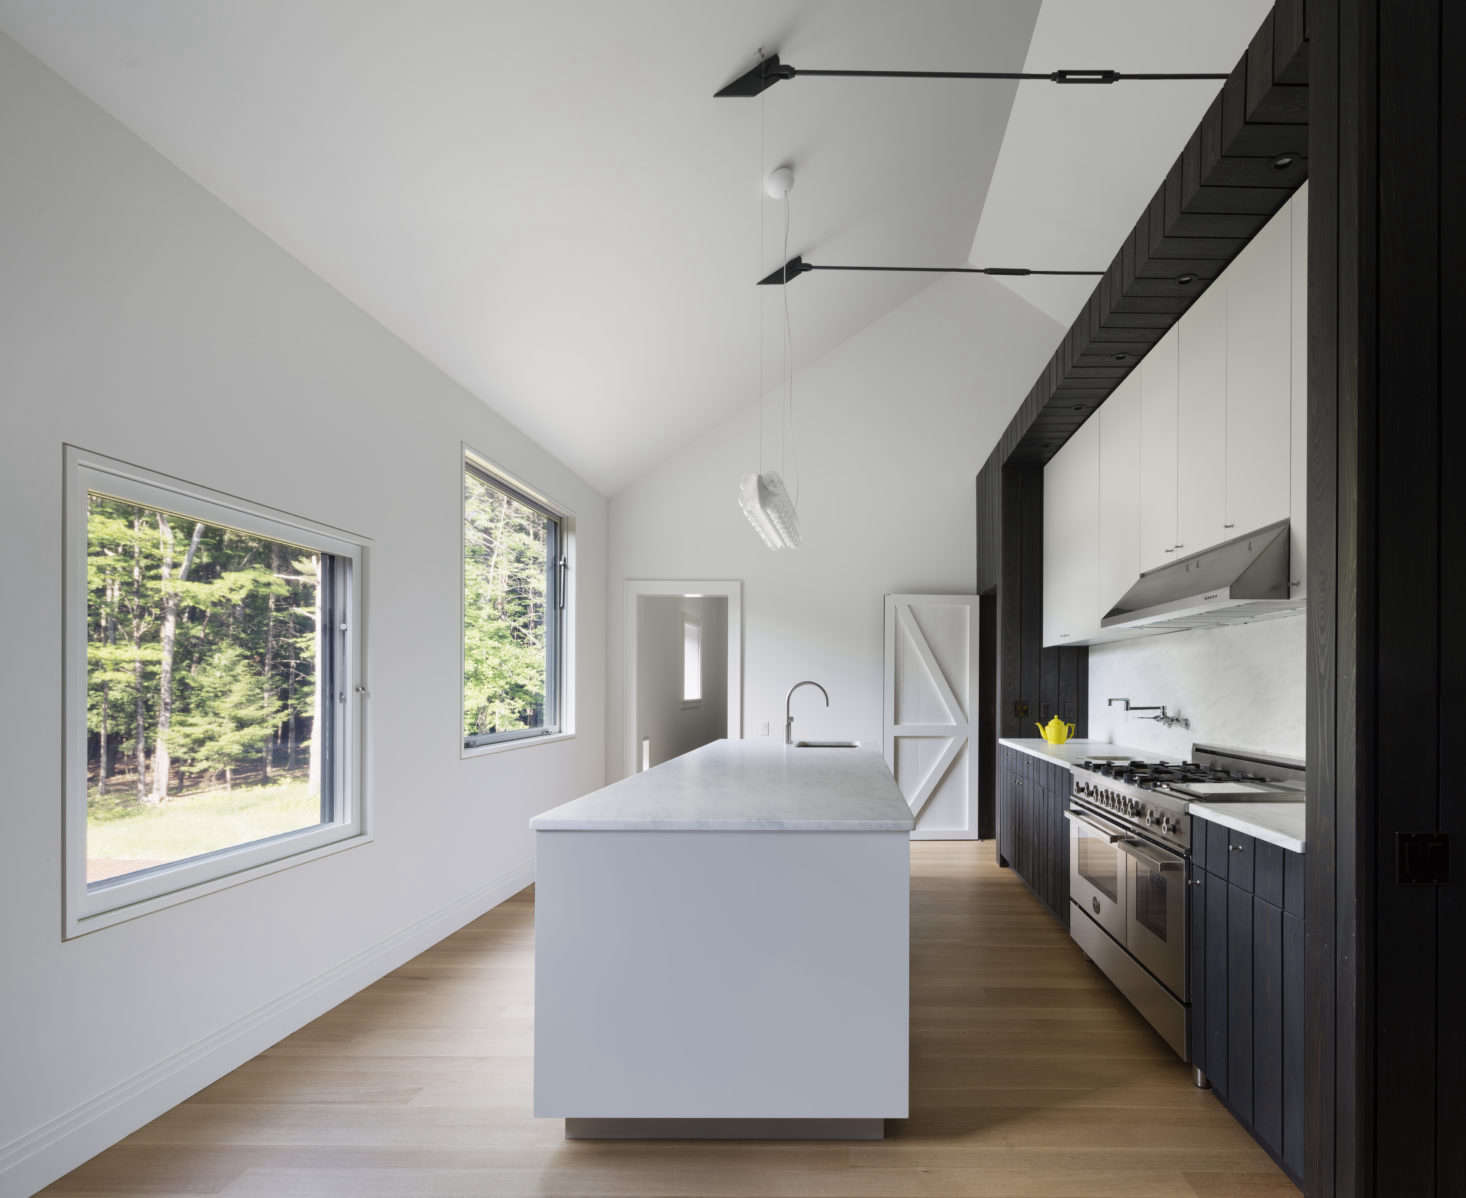 The streamlined black and white kitchen at Undermountain, a barn-style house in the Berkshires by O'Neill Rose Architects